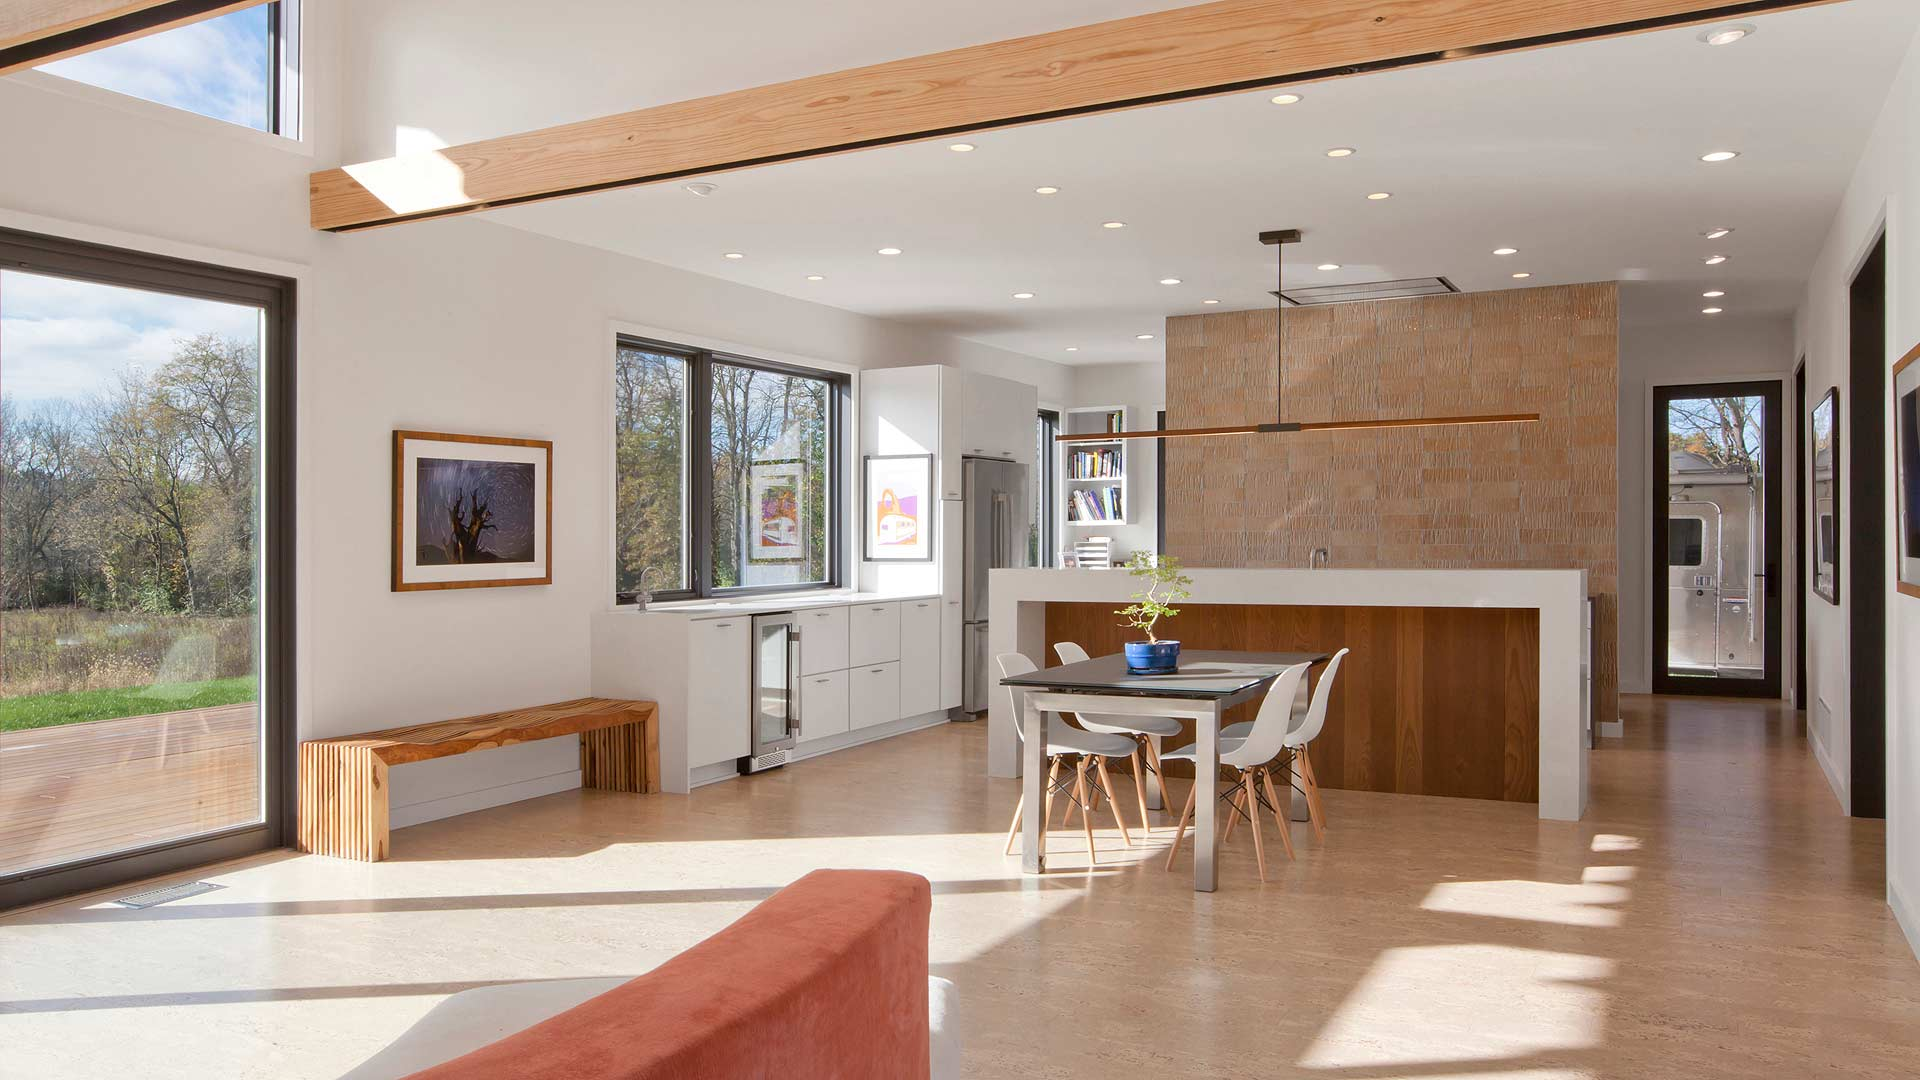 View from open concept living room to dining and kitchen areas - cork flooring, exposed beams, vaulted ceiling, clerestory windows, orange tile, thermally treated wood, white slab door cabinets, Airstream - New Modern House 1 (Copperwood) - Zionsville, IN